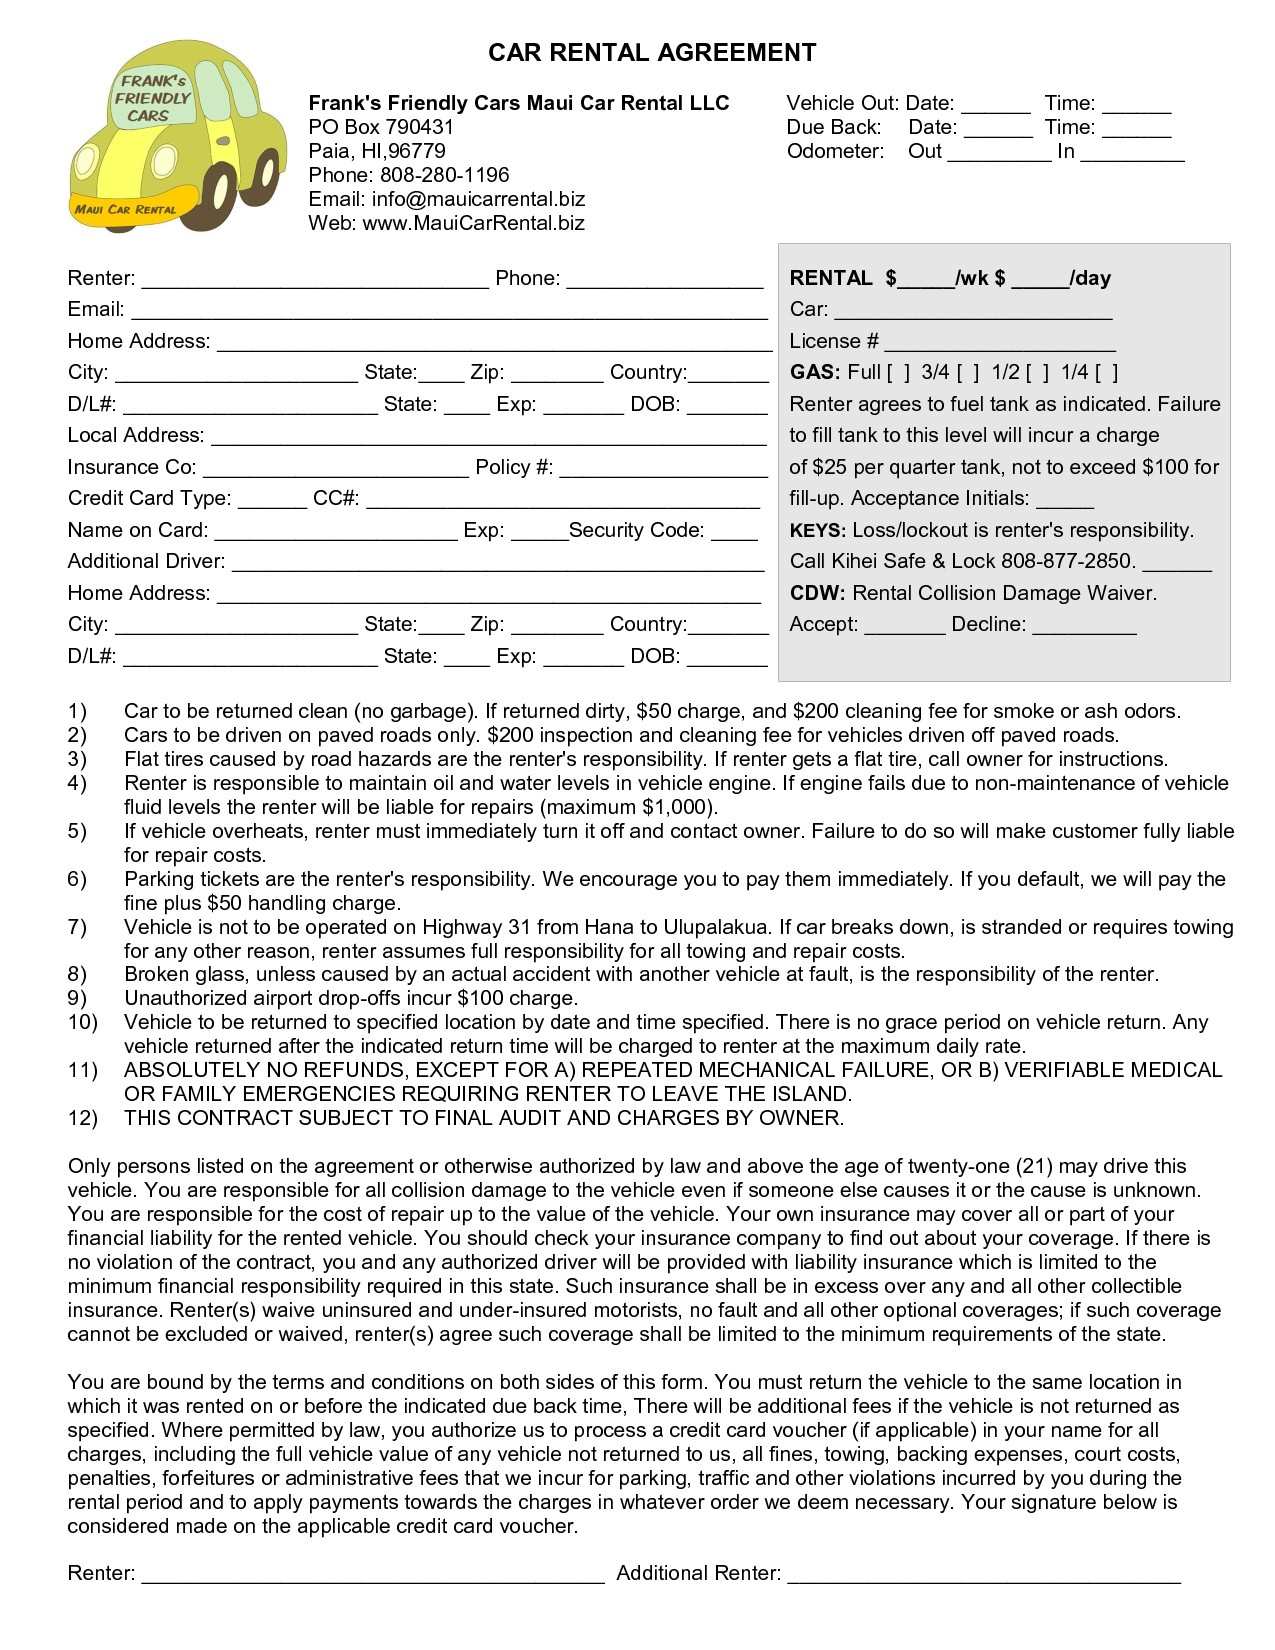 Residential Tenant Application Form